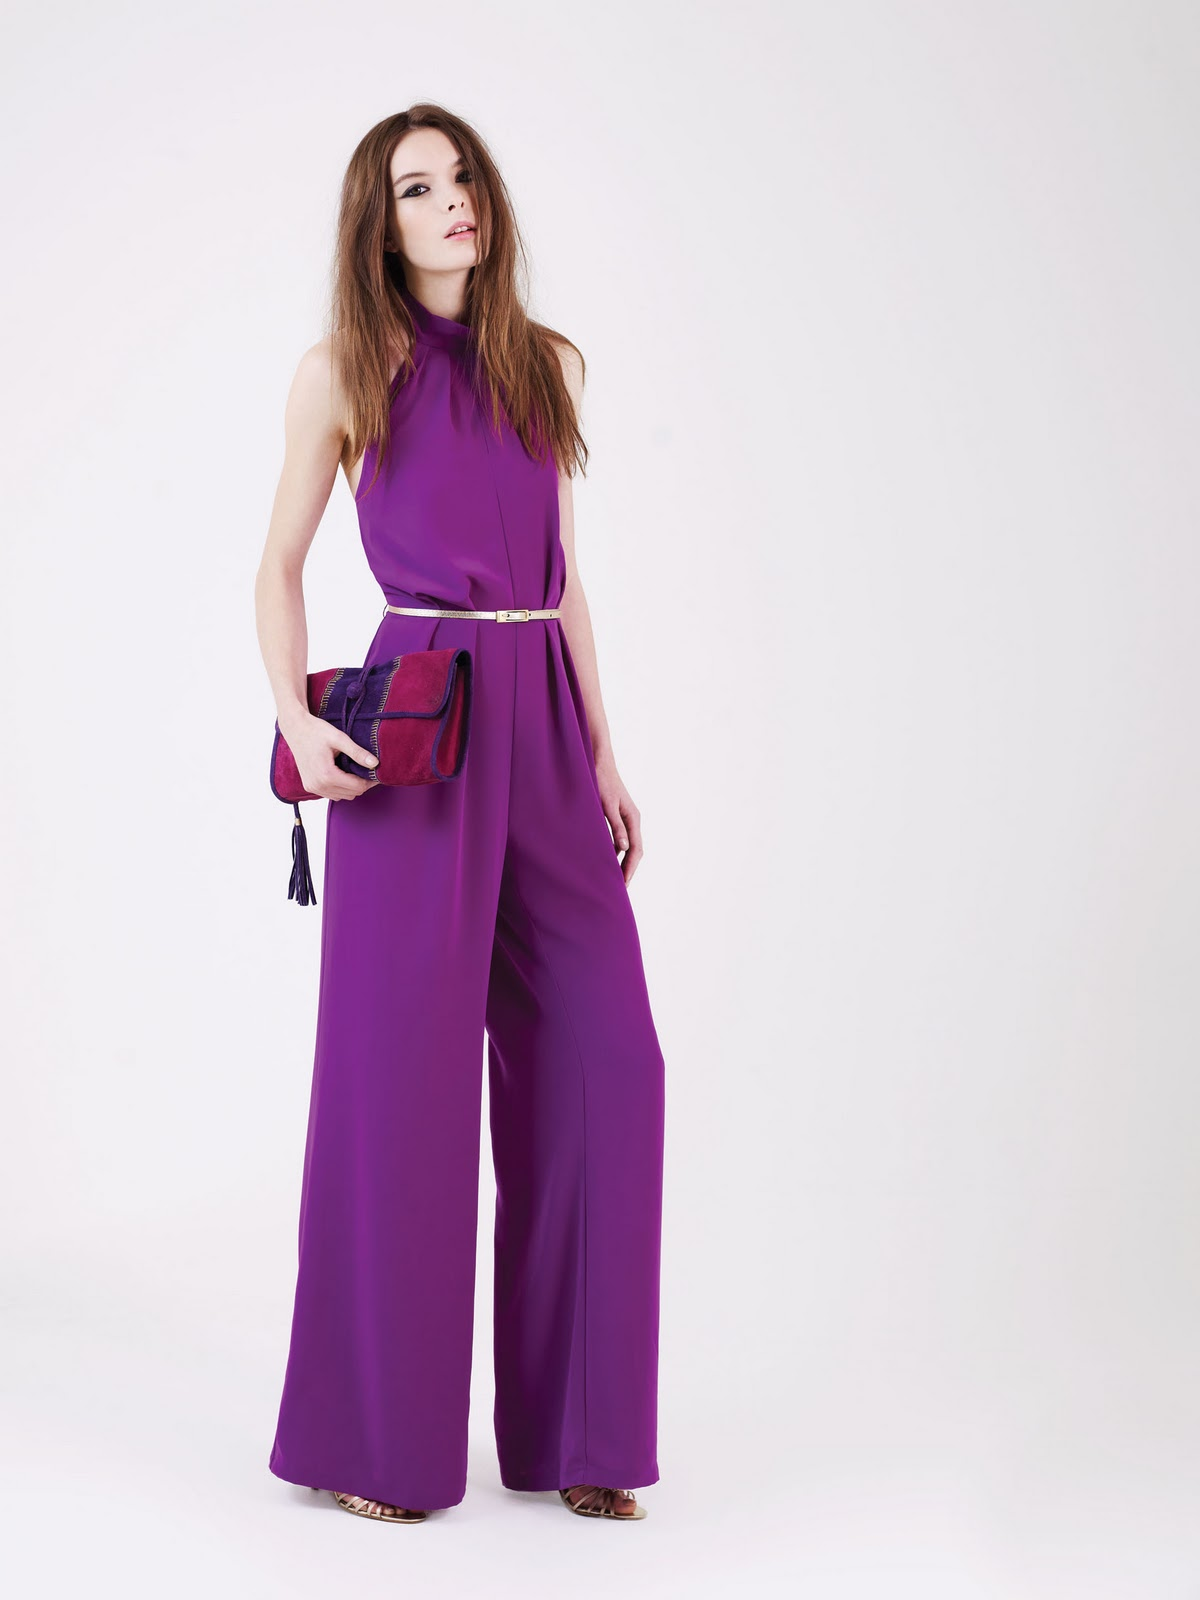 Latest Fashionable Dresses: Jumpsuits - The Perfect Winter Dress